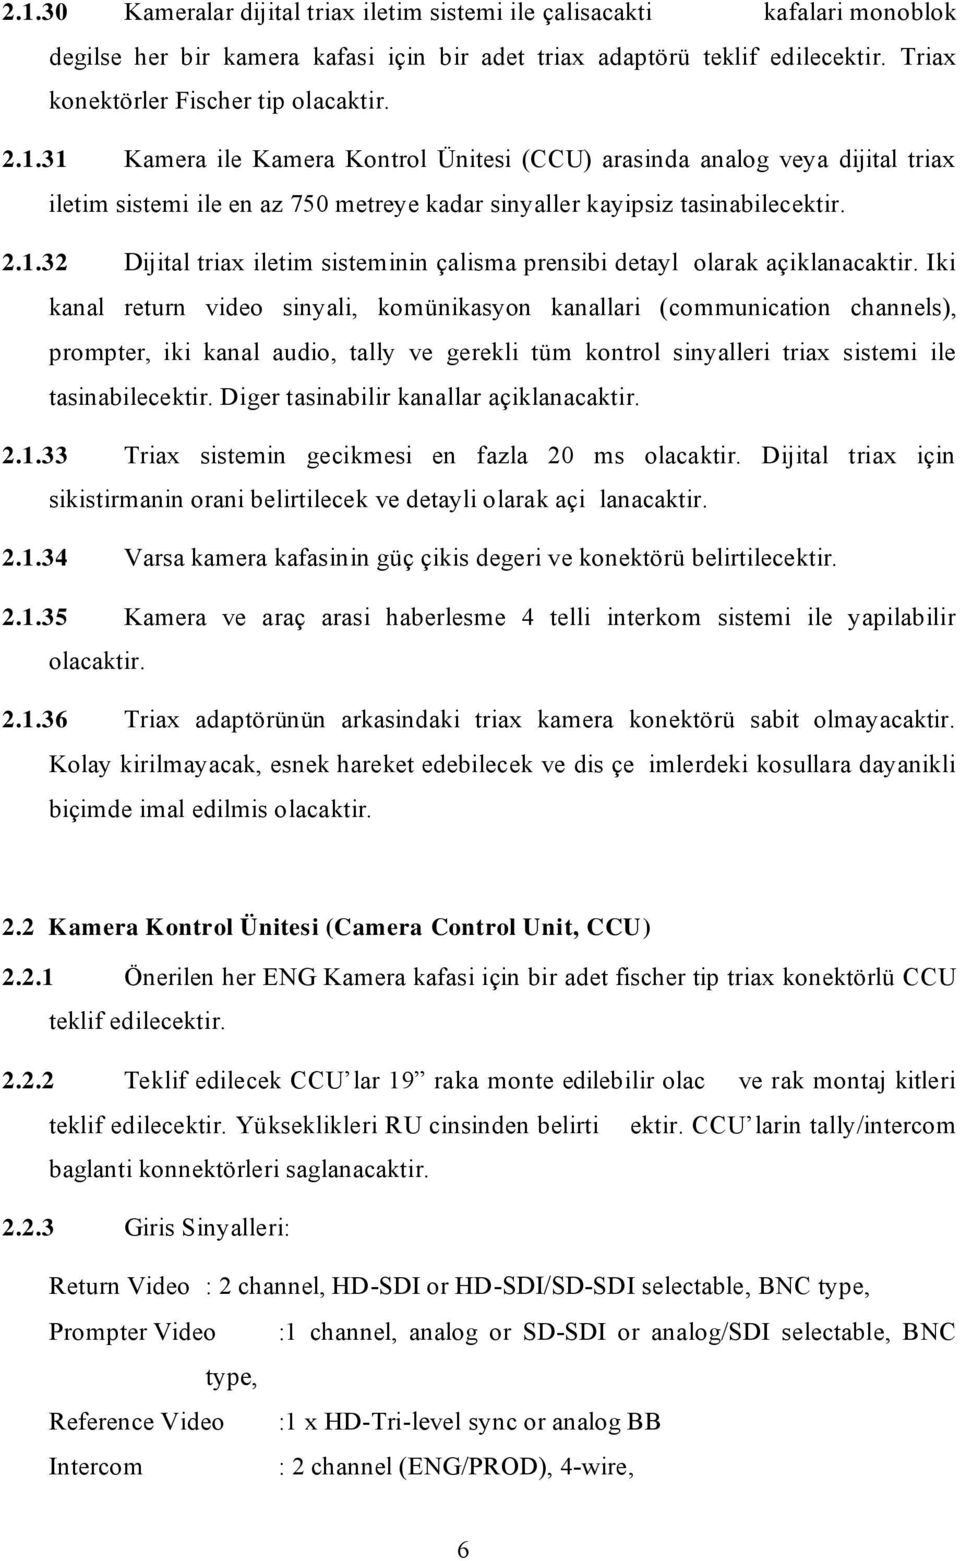 Iki kanal return video sinyali, komünikasyon kanallari (communication channels), prompter, iki kanal audio, tally ve gerekli tüm kontrol sinyalleri triax sistemi ile tasinabilecektir.